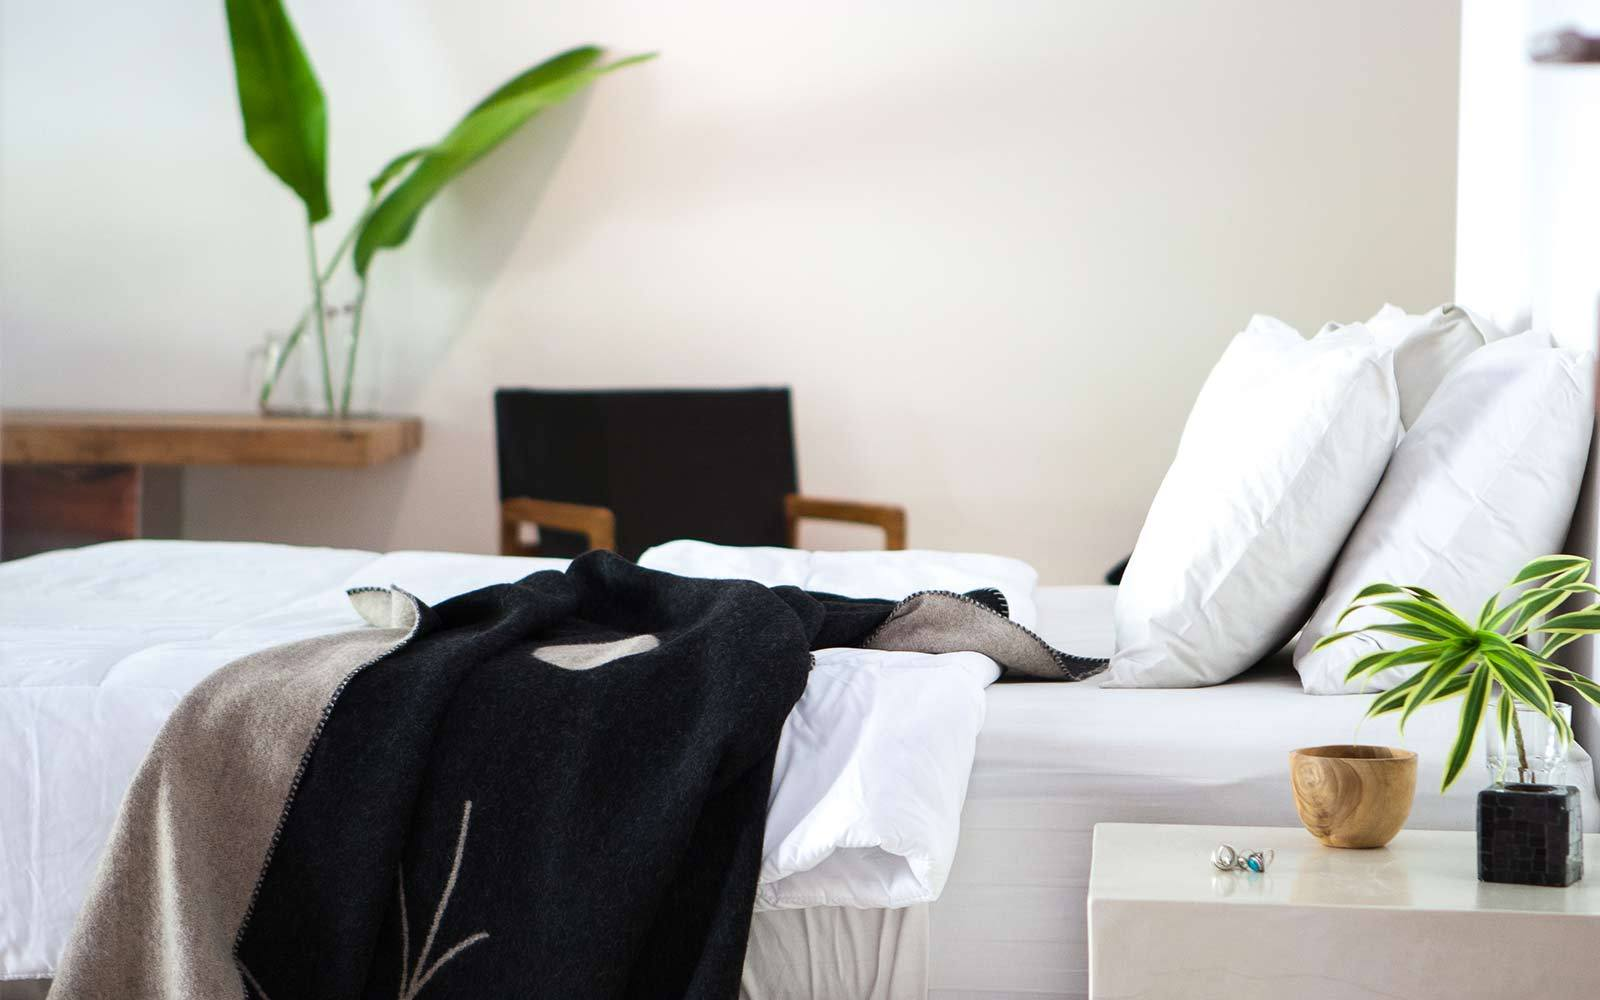 Sustainable furniture & home decor: White bed linens with black throw rug